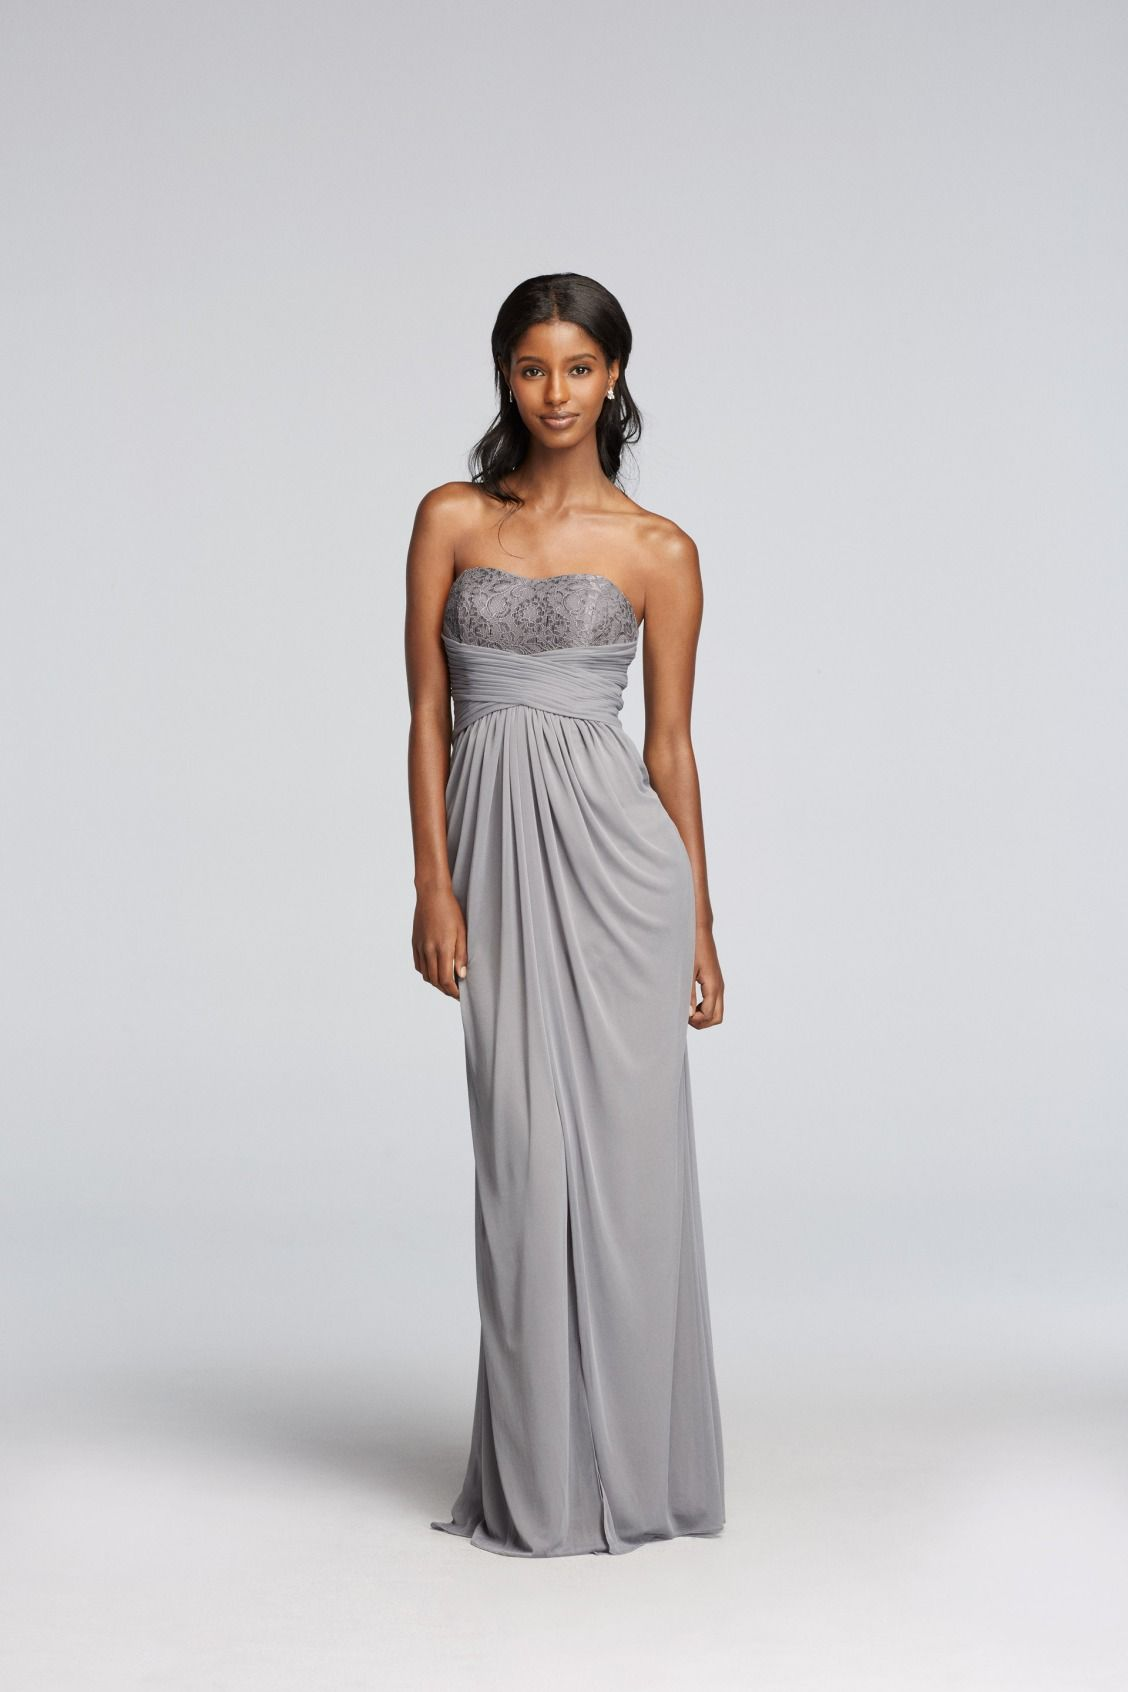 Silver long strapless metallic lace and pleated waist davids silver long strapless metallic lace and pleated waist davids bridal bridesmaid dress ombrellifo Image collections